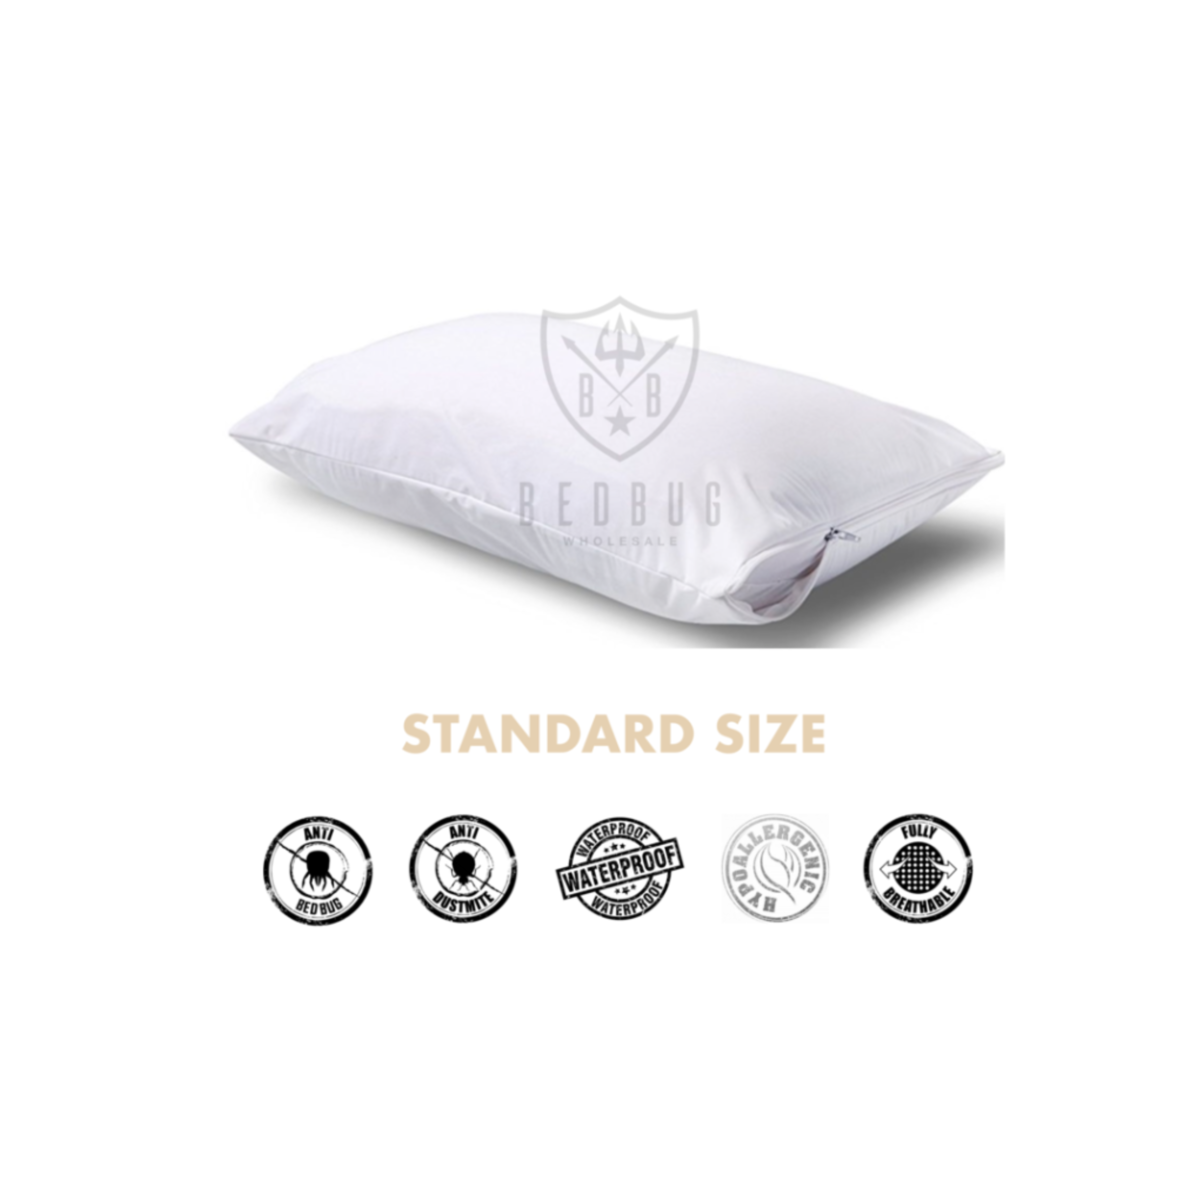 Standard Size Allergy, Dust Mite, Bed Bug Pillow Cover